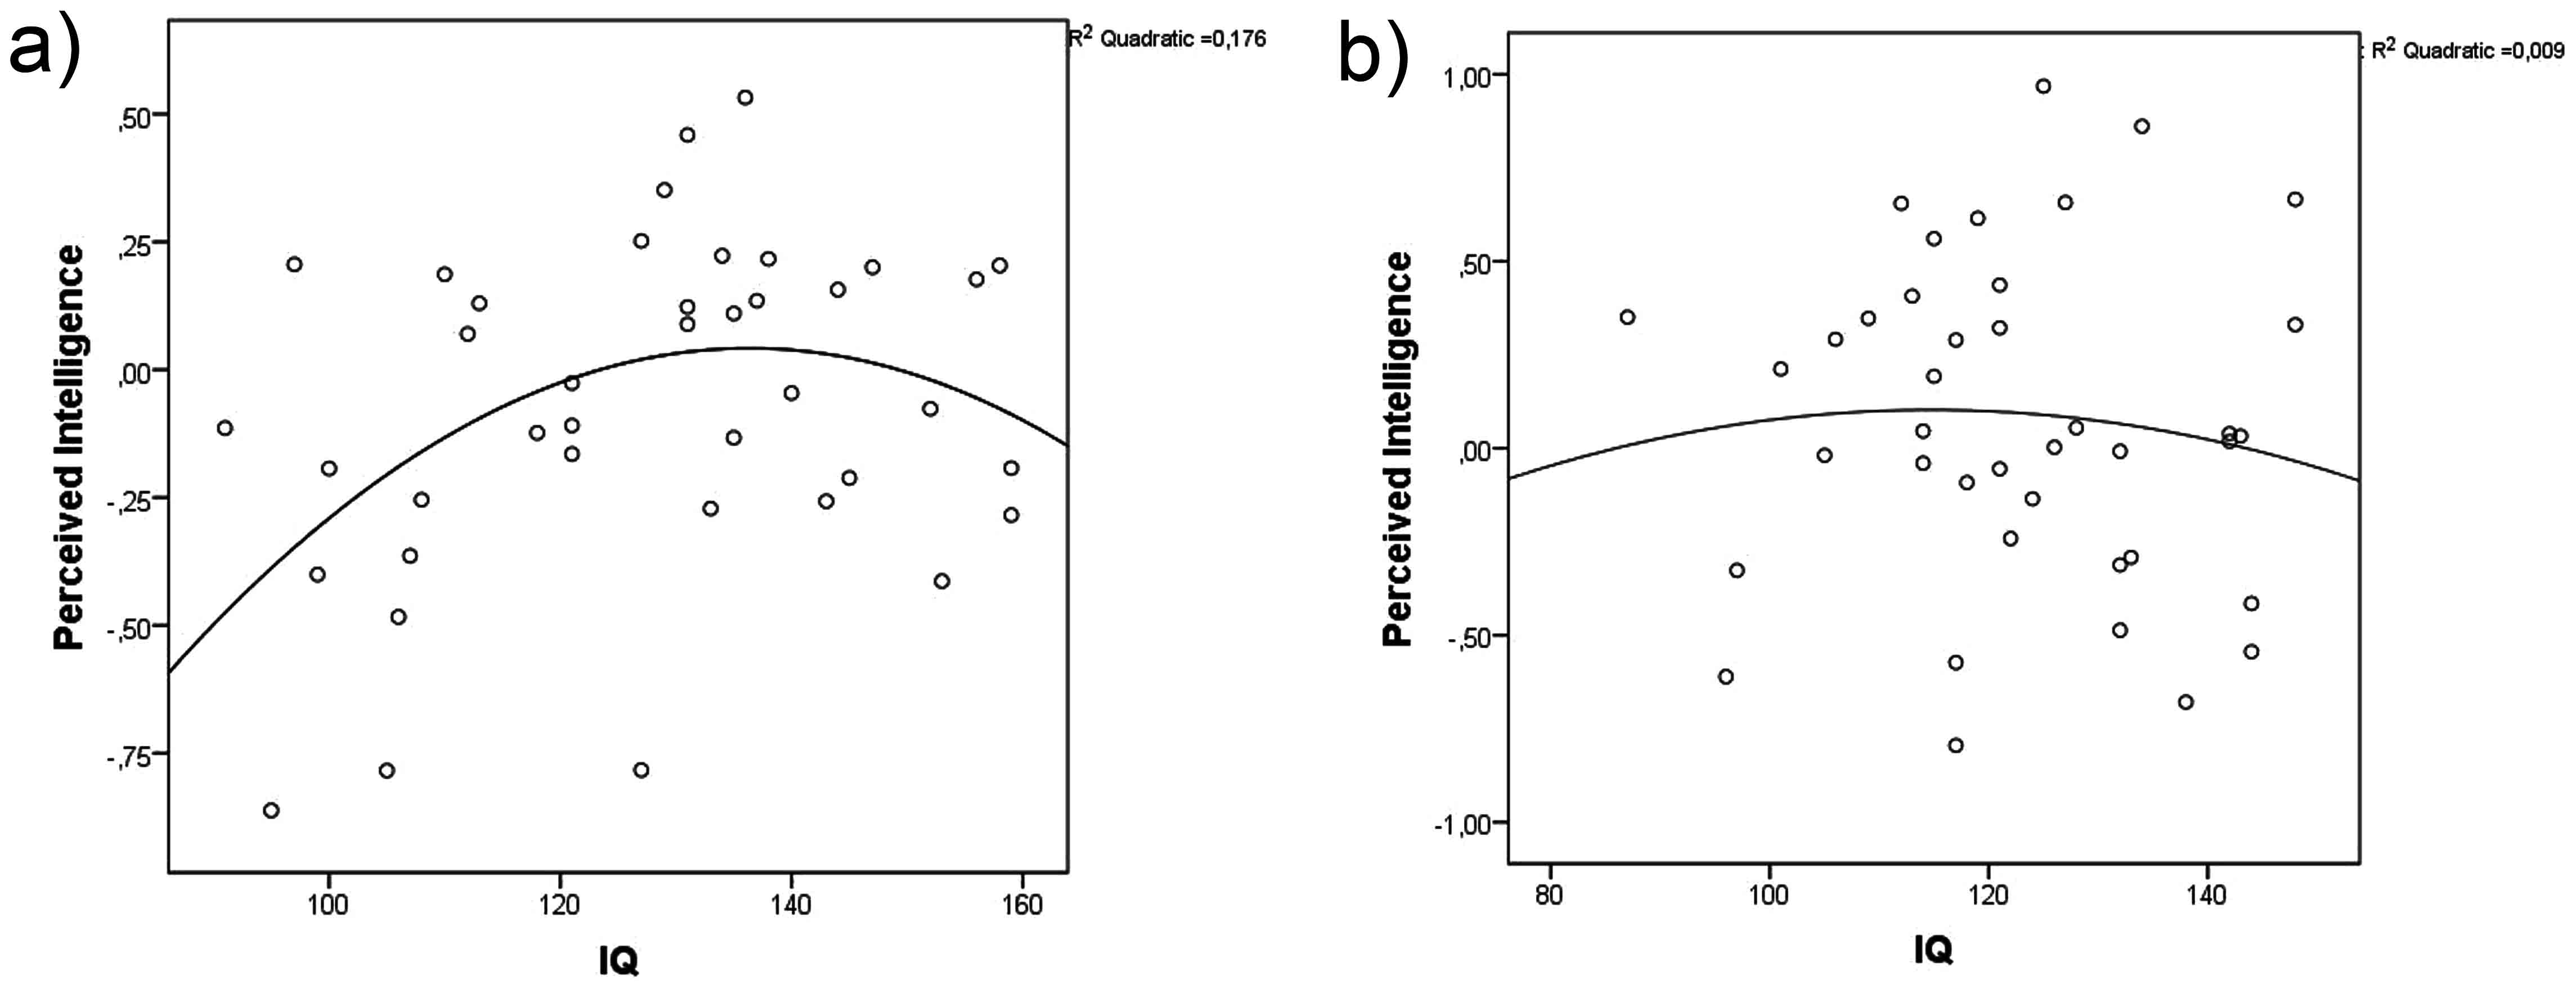 Graph demonstrating linear positive and quadratic negative relationship between IQ and perceived intelligence in men (a) and women (b).